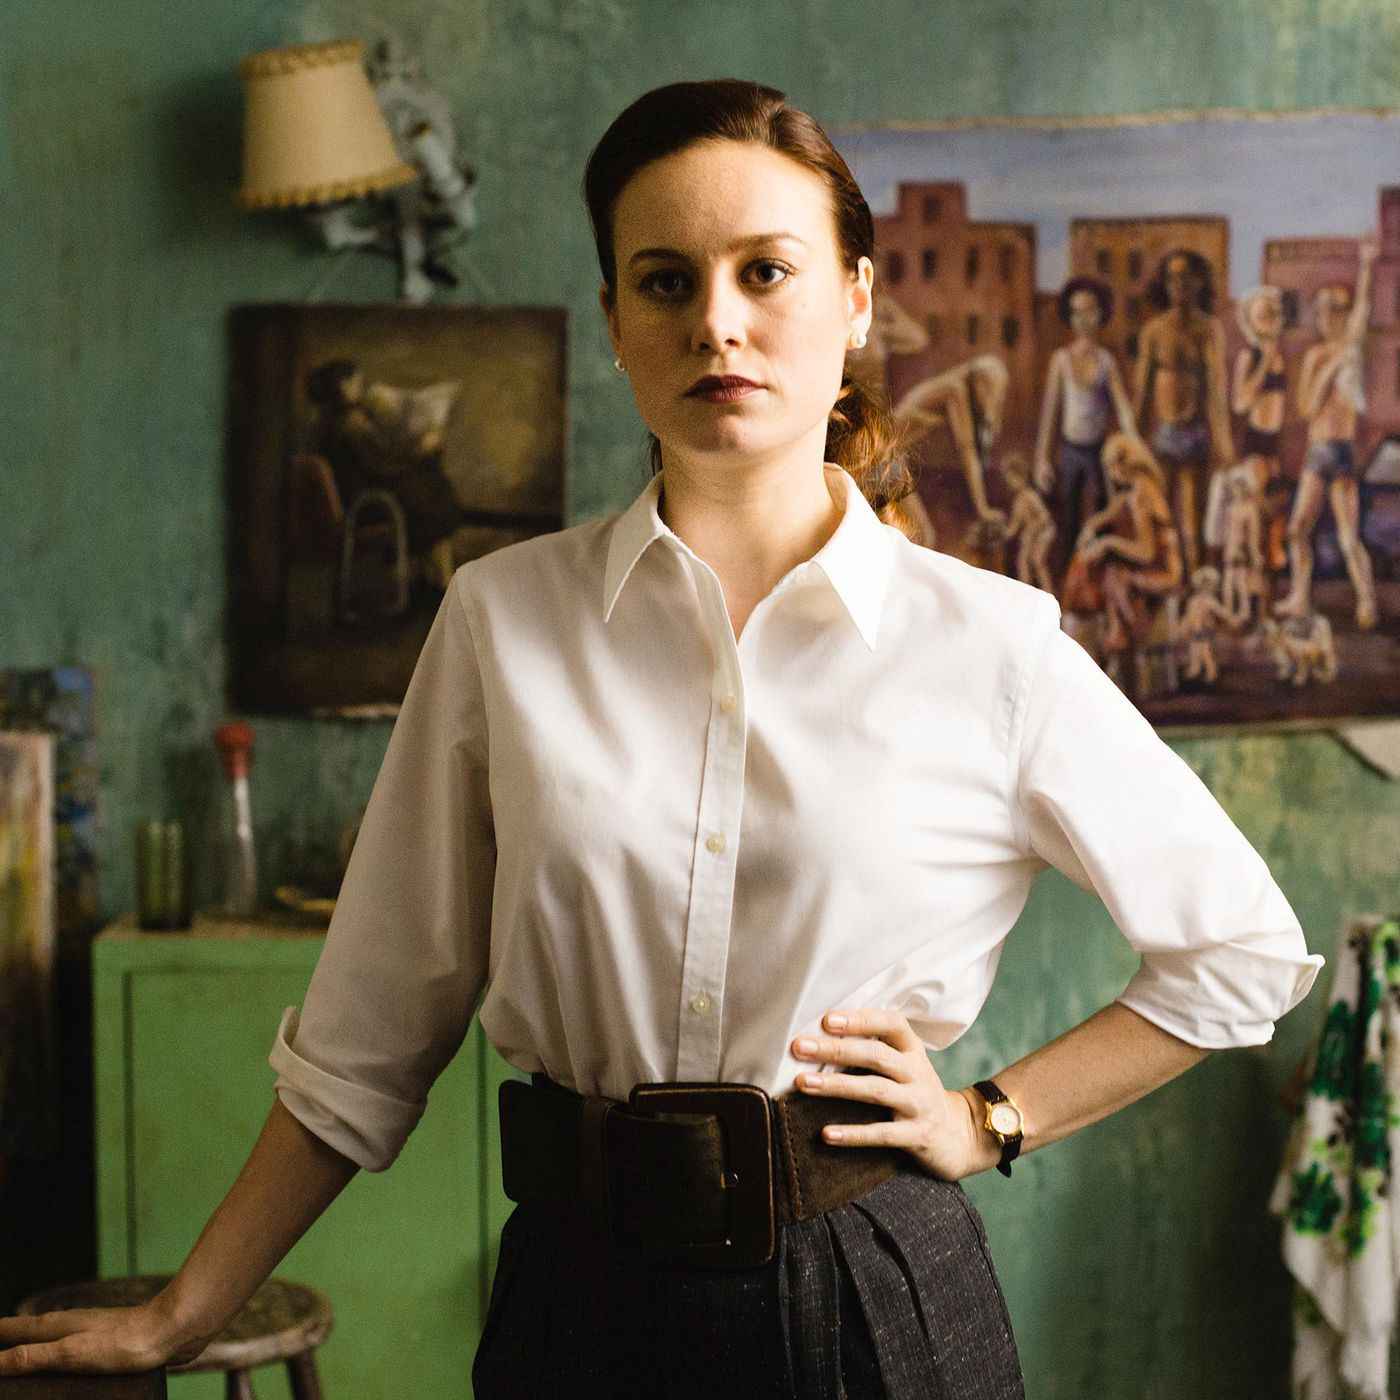 c10e797a87ccfc The Glass Castle turns a best-selling memoir into a moving but flawed film